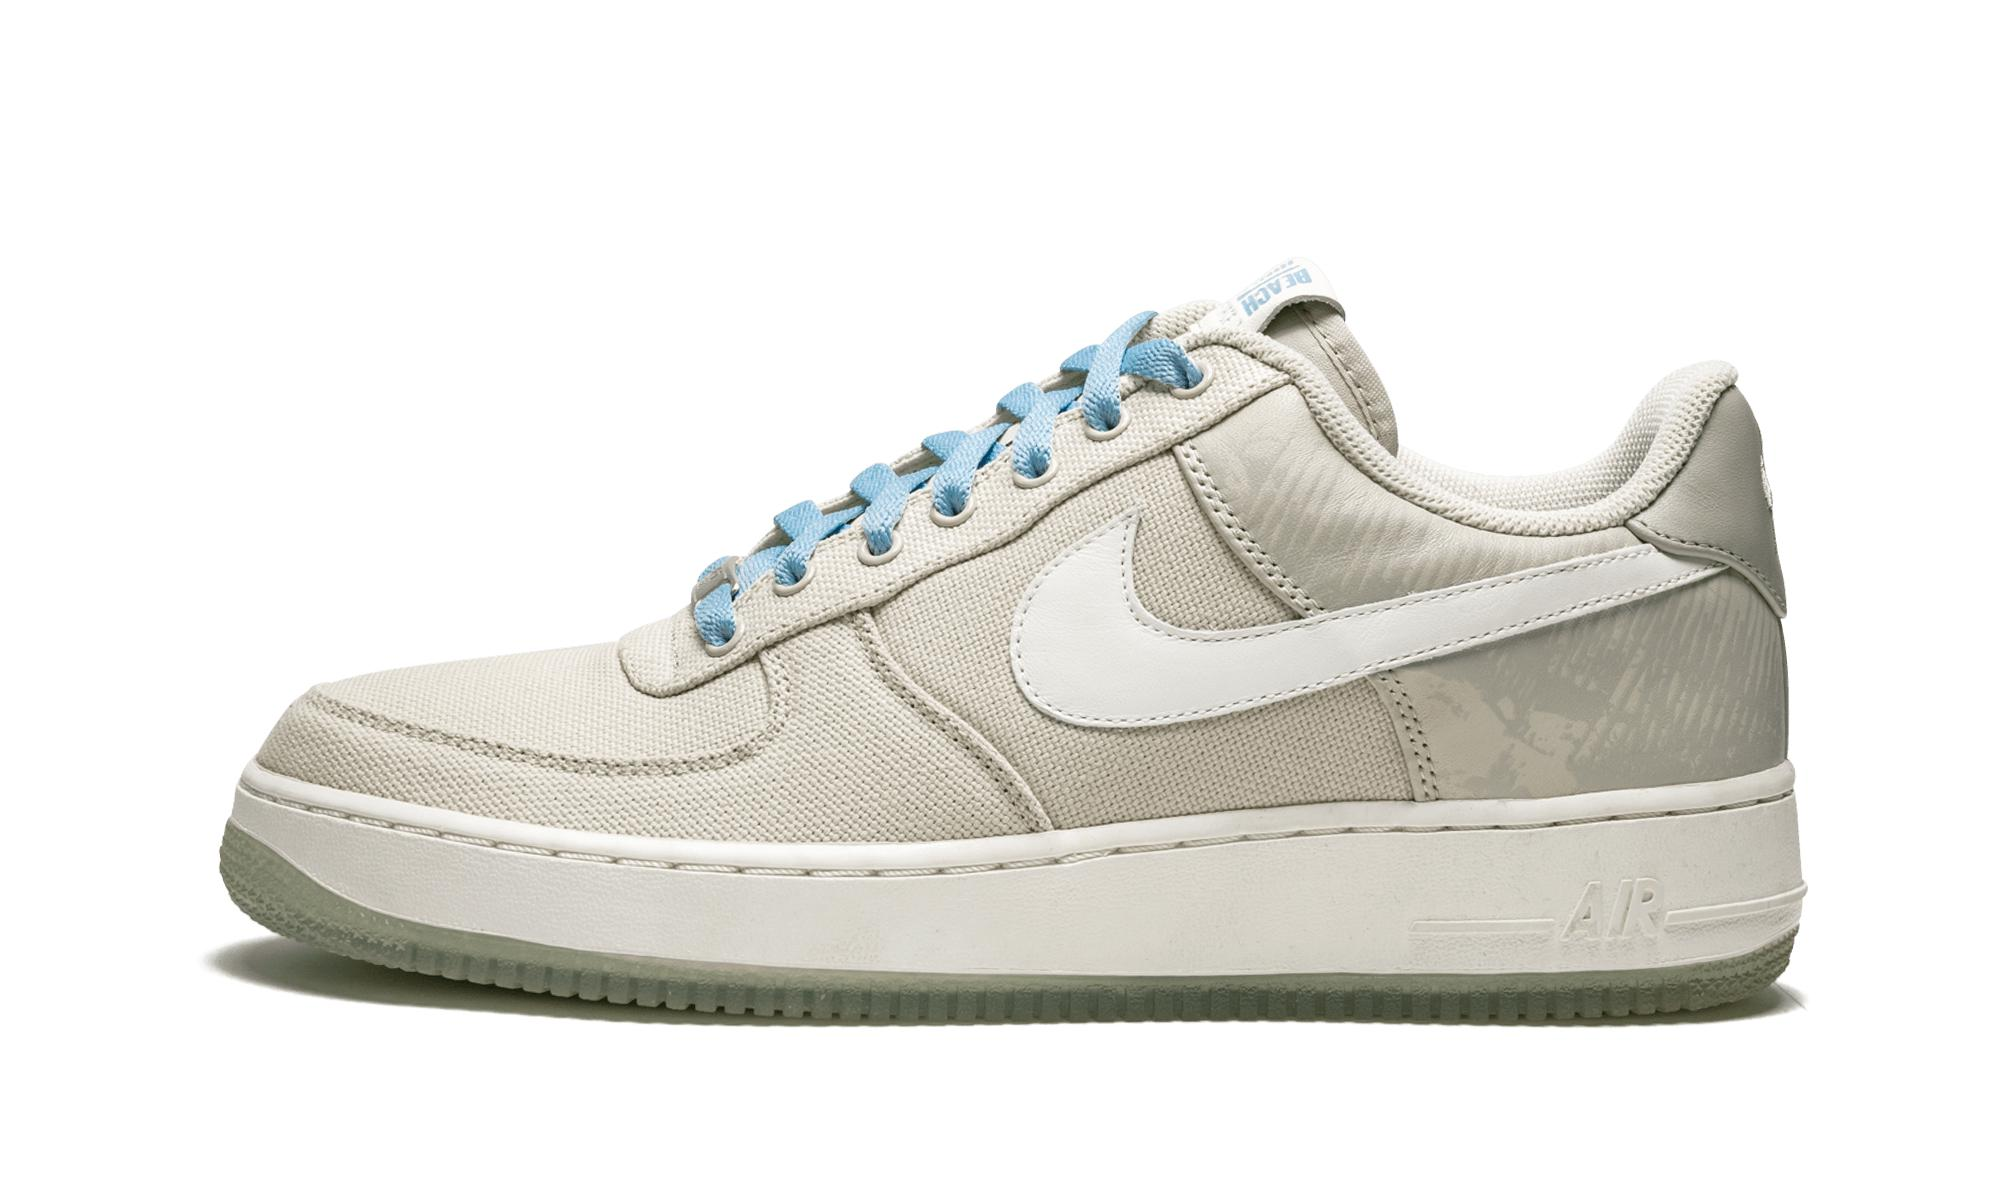 Nike Air Force 1 Premium Qs for Men - Lyst 39ec2be62